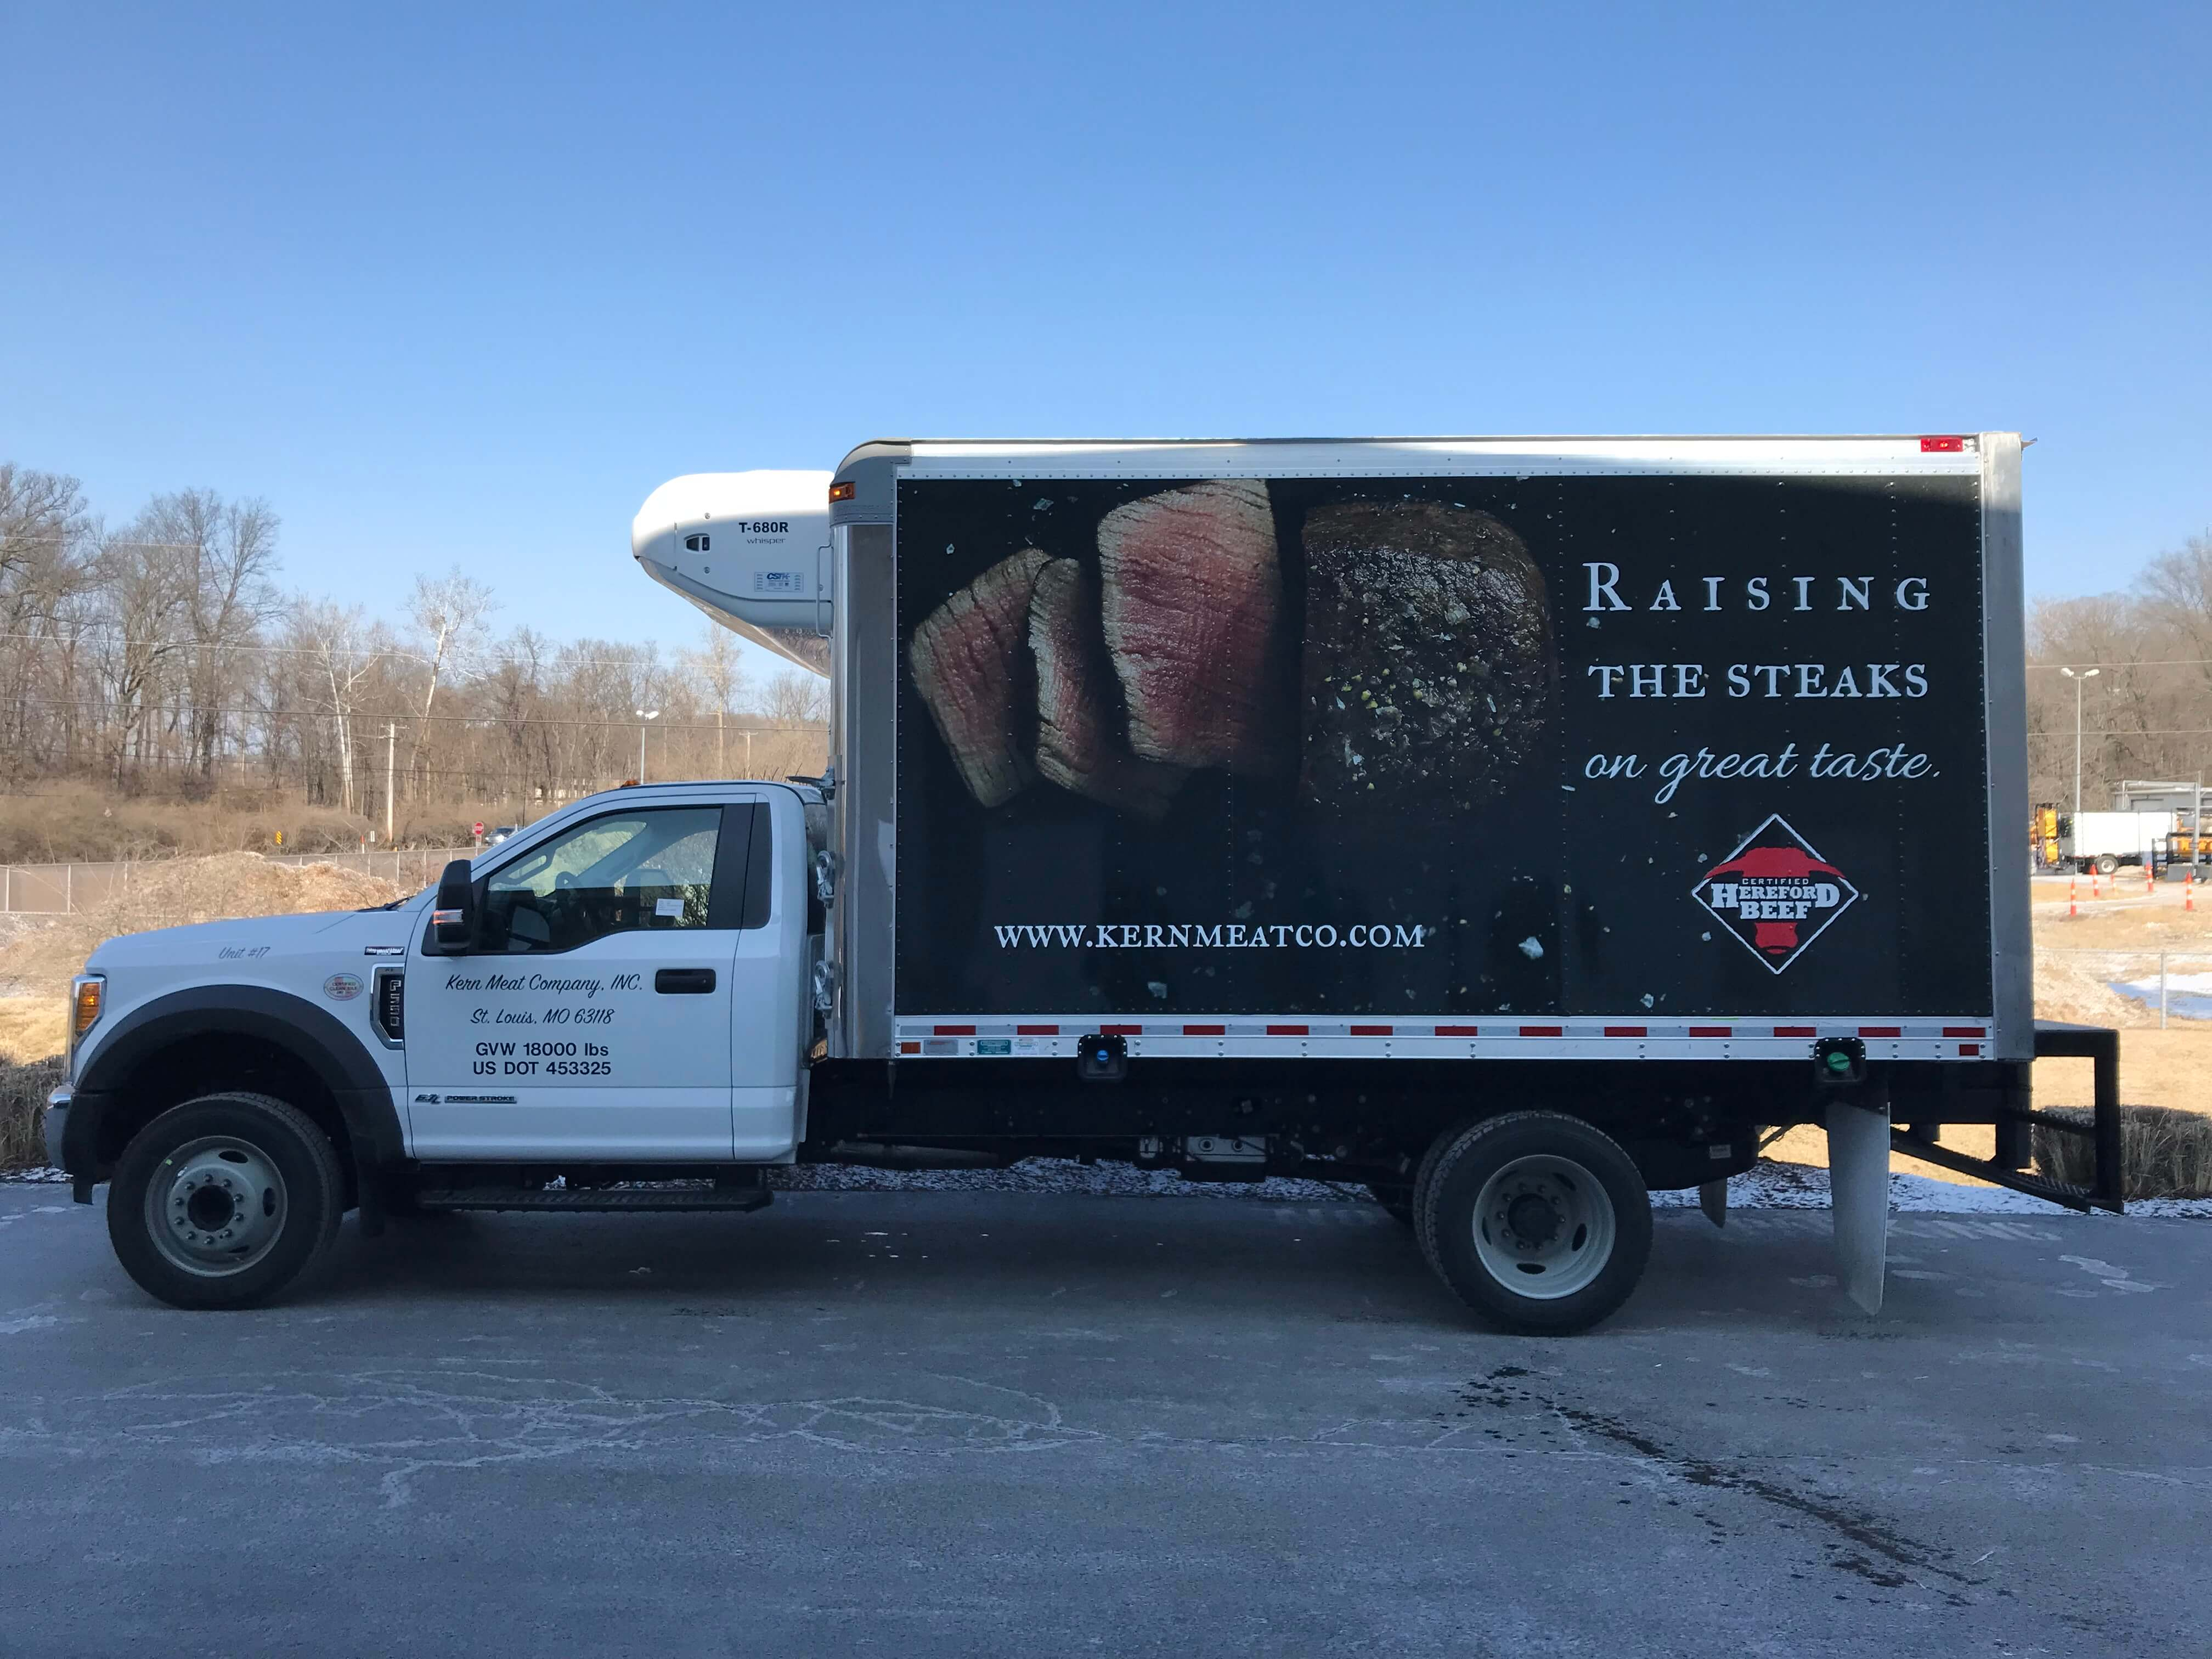 Certified Hereford Beef Provides Partner Support